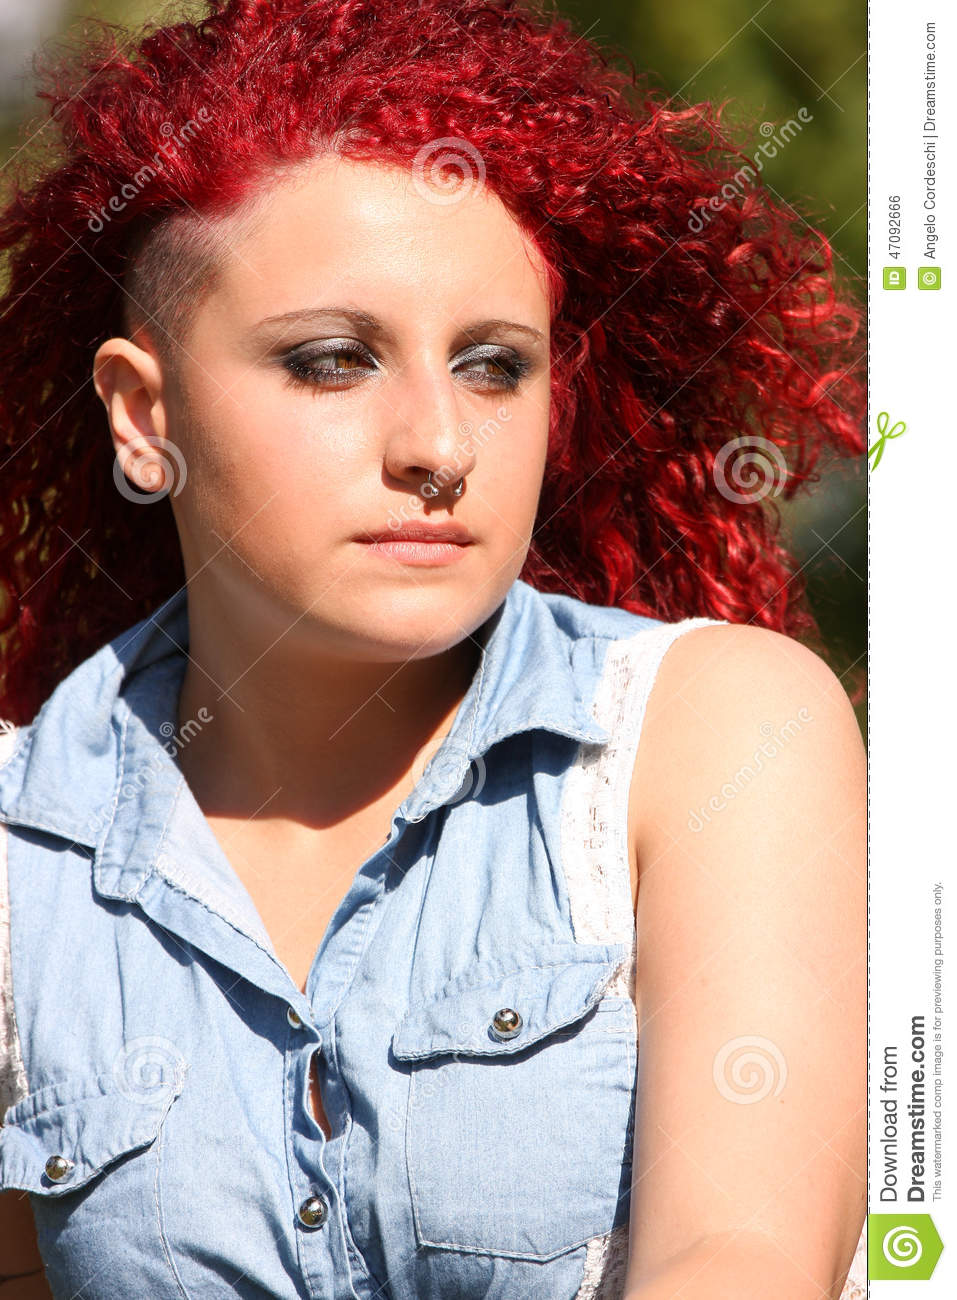 young girl with red hair stock photo image of forest portrait of a young girl with red curly hair and piercing